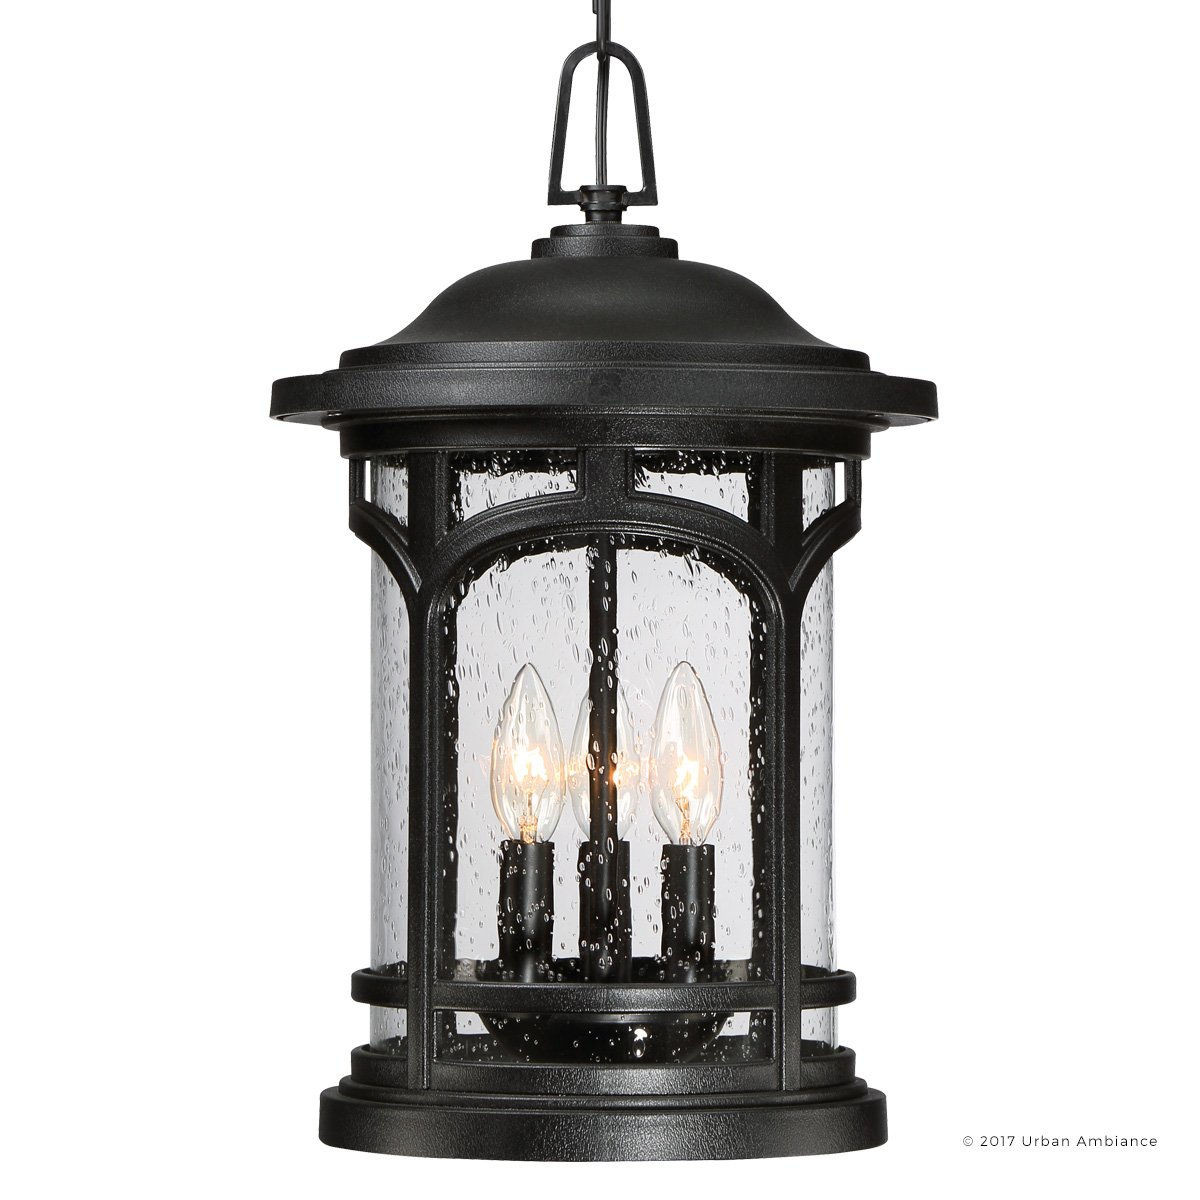 Luxury Rustic Outdoor Pendant Light, Large Size: 18''H x 11''W, with Colonial Style Elements, Wrought Iron Design, High-End Black Silk Finish and Seeded Glass, UQL1108 by Urban Ambiance